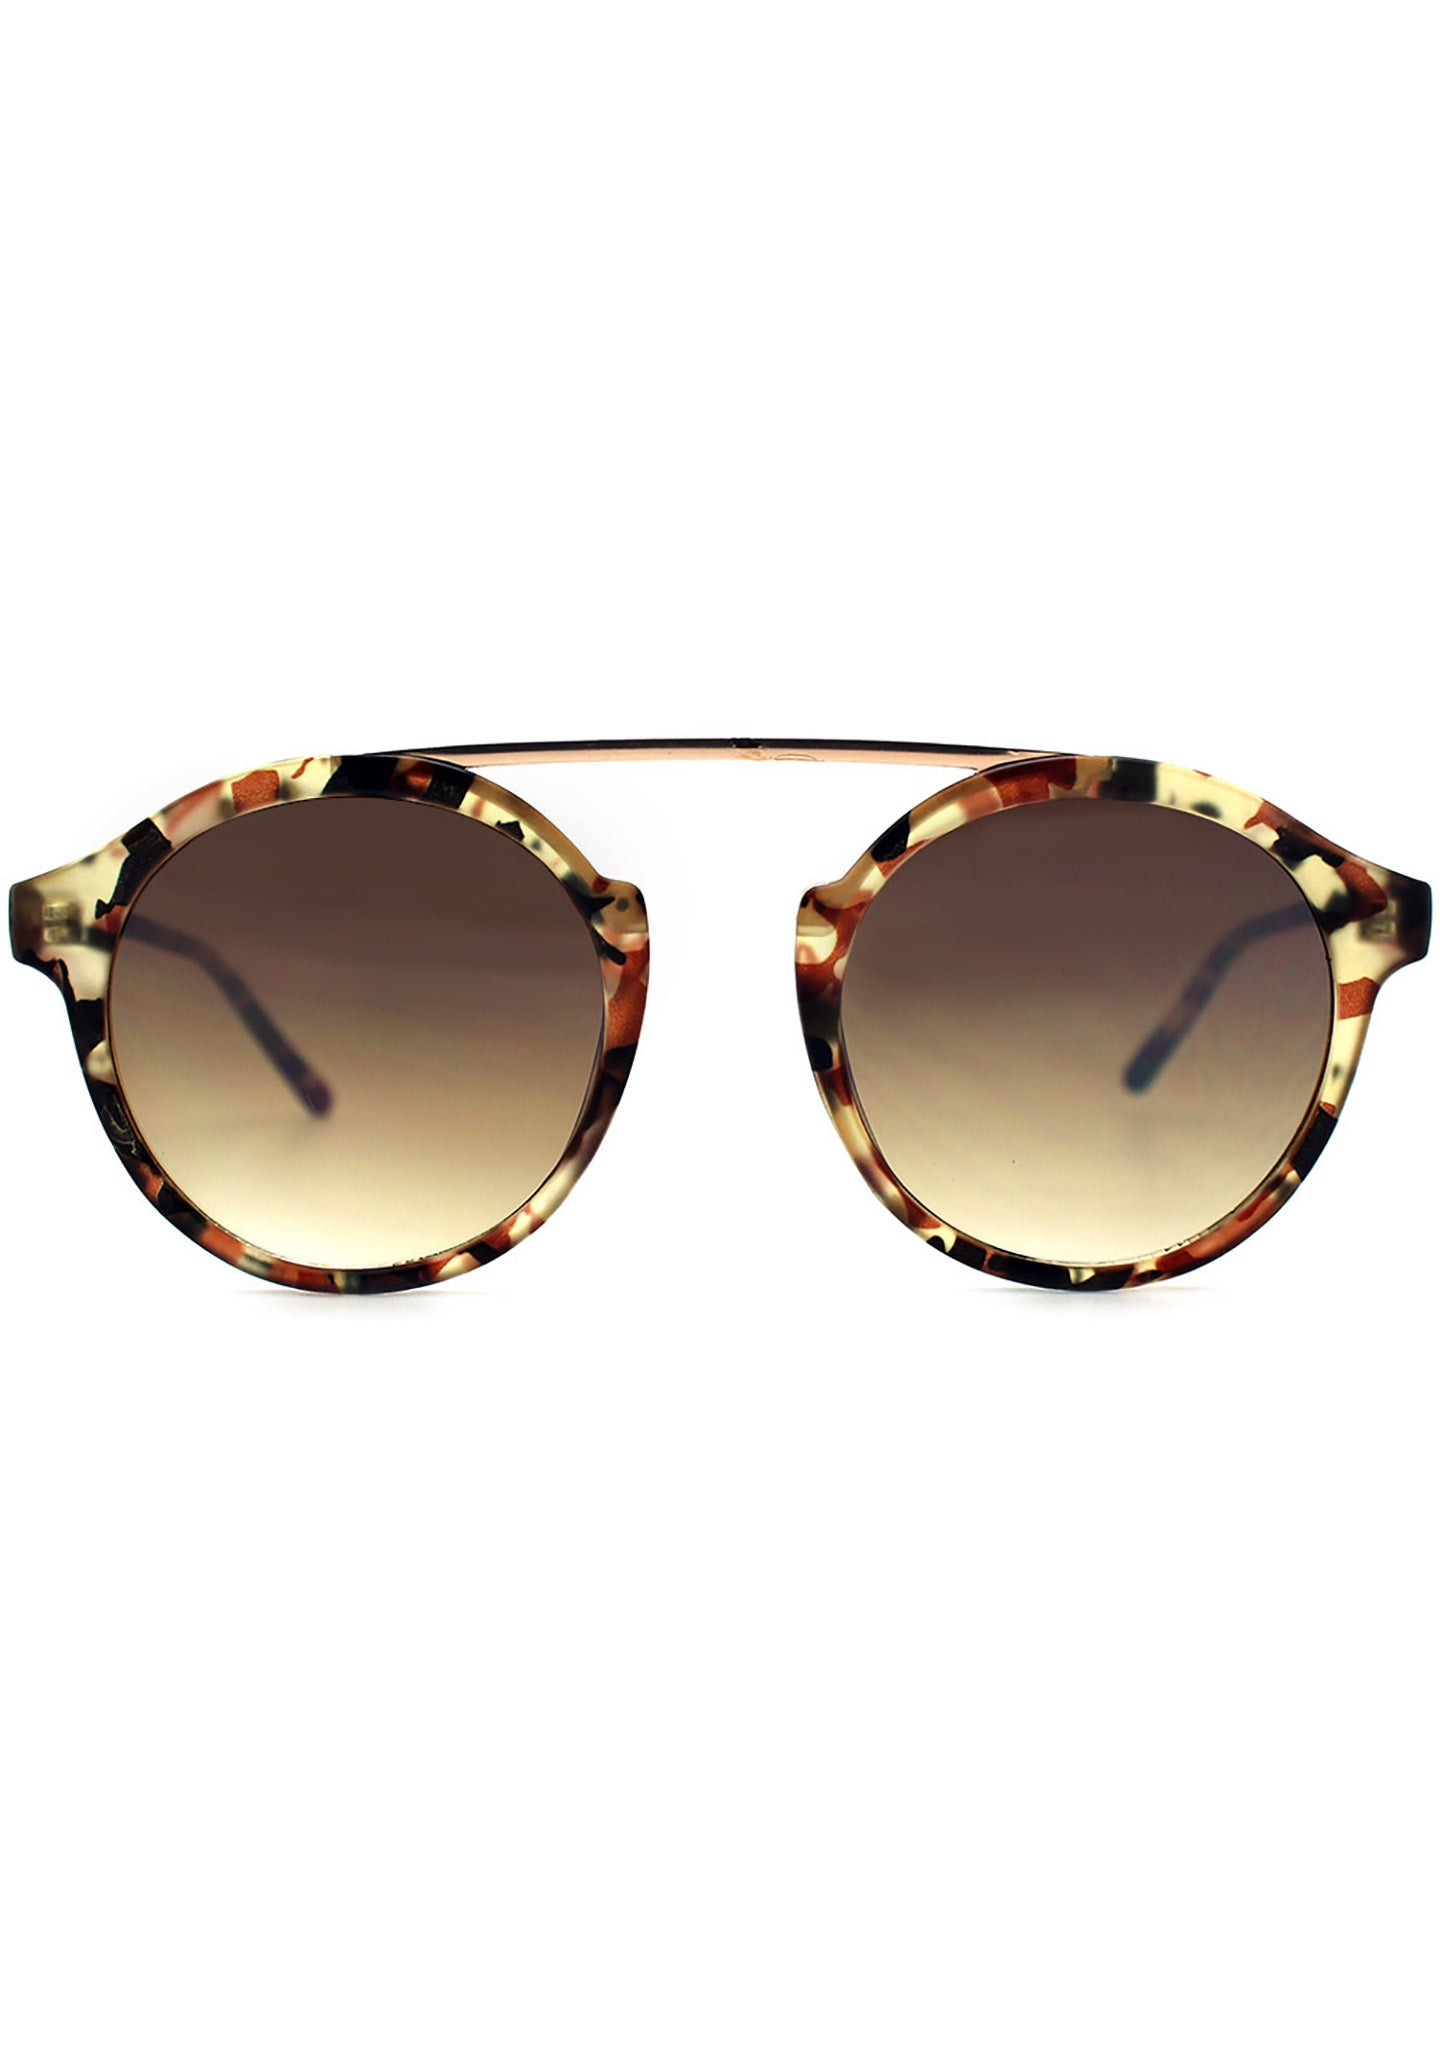 7 LUXE Off World Sunglasses in Matte